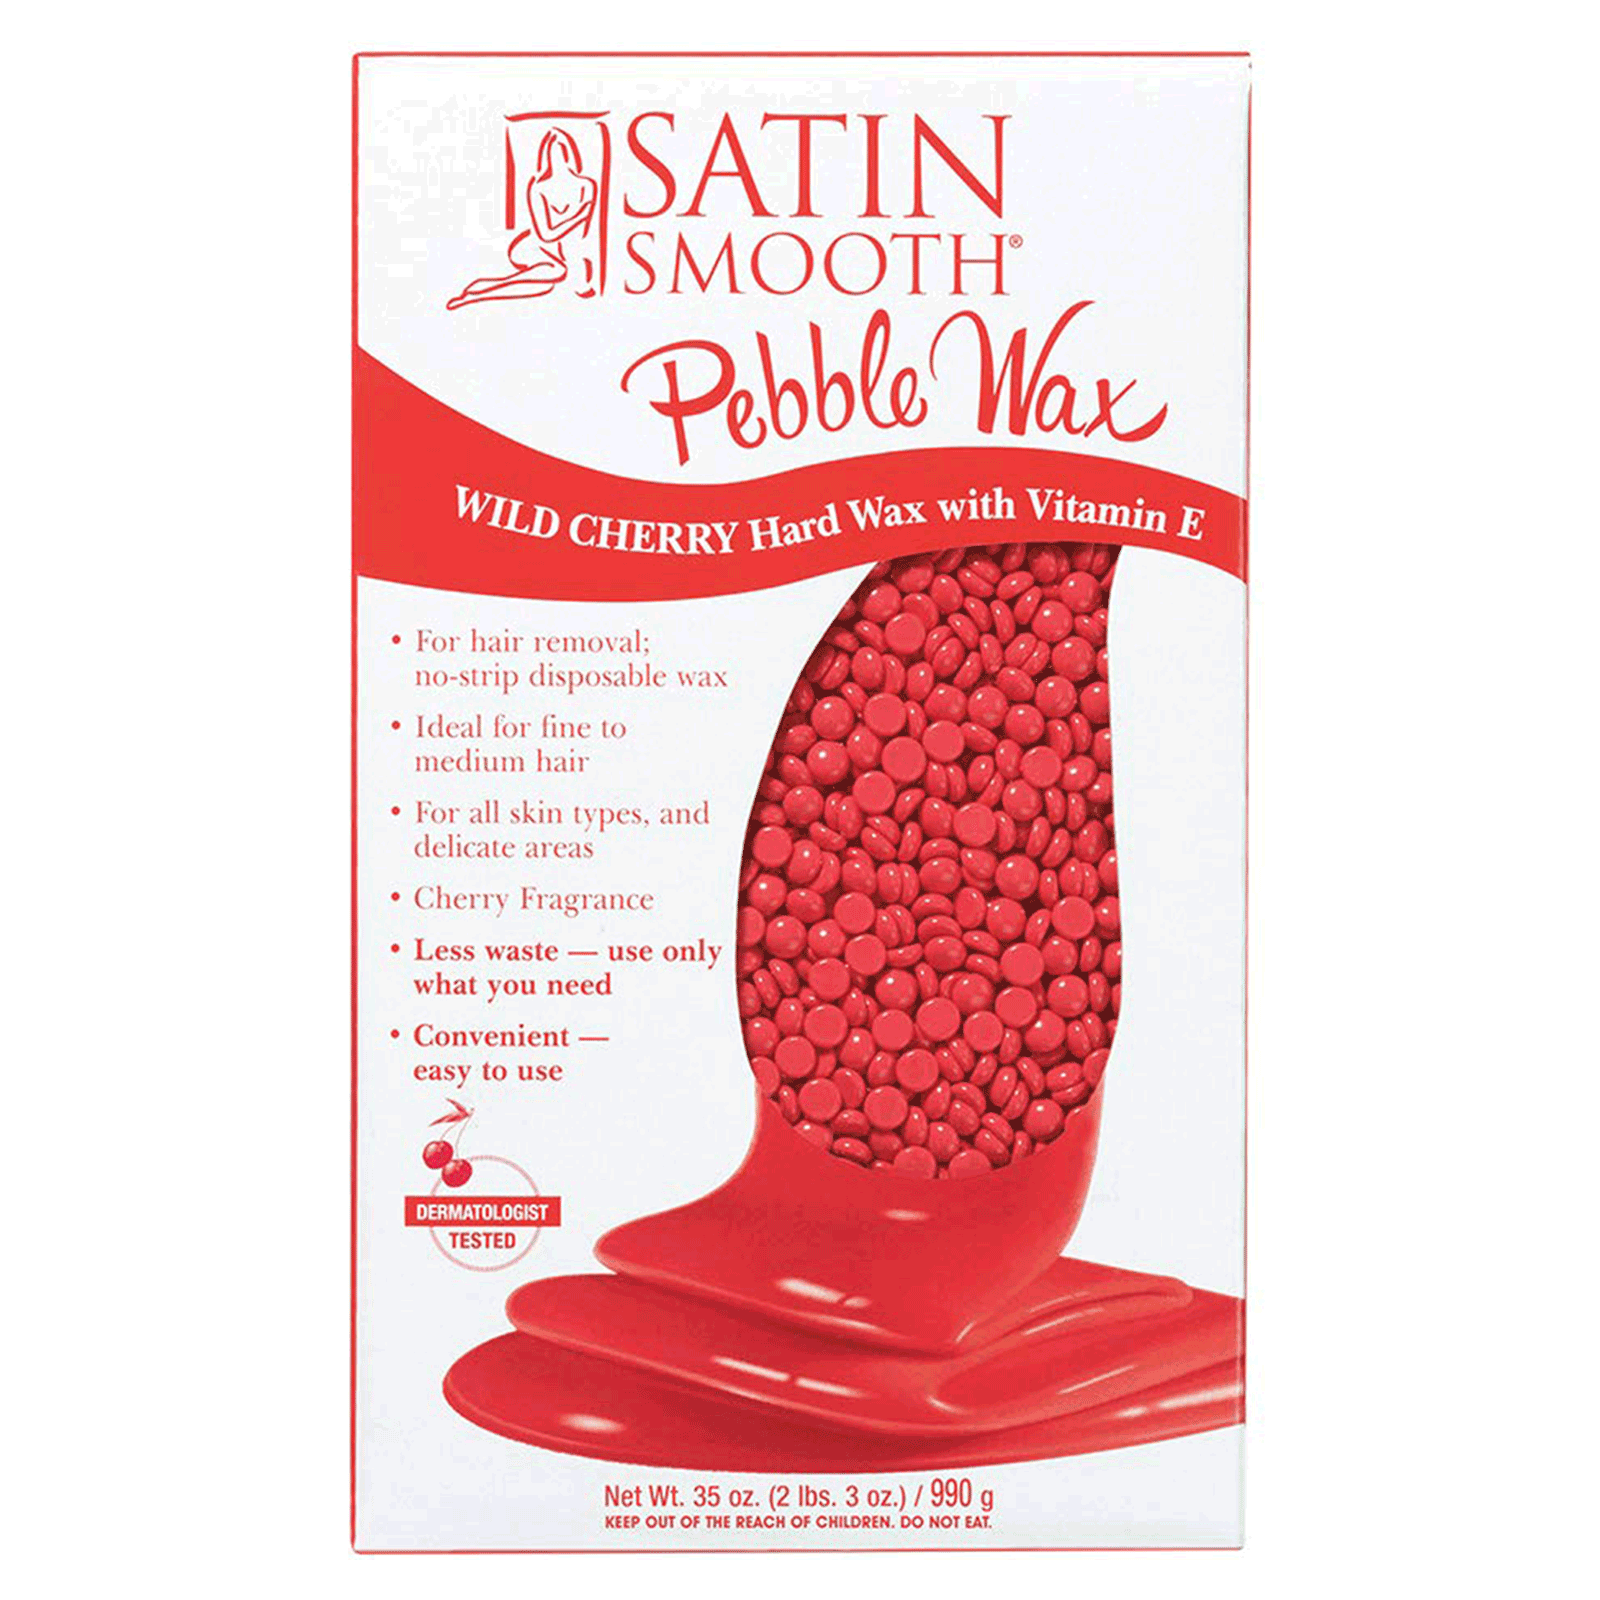 Pebble Hard Wax - Wild Cherry with Vitamin E